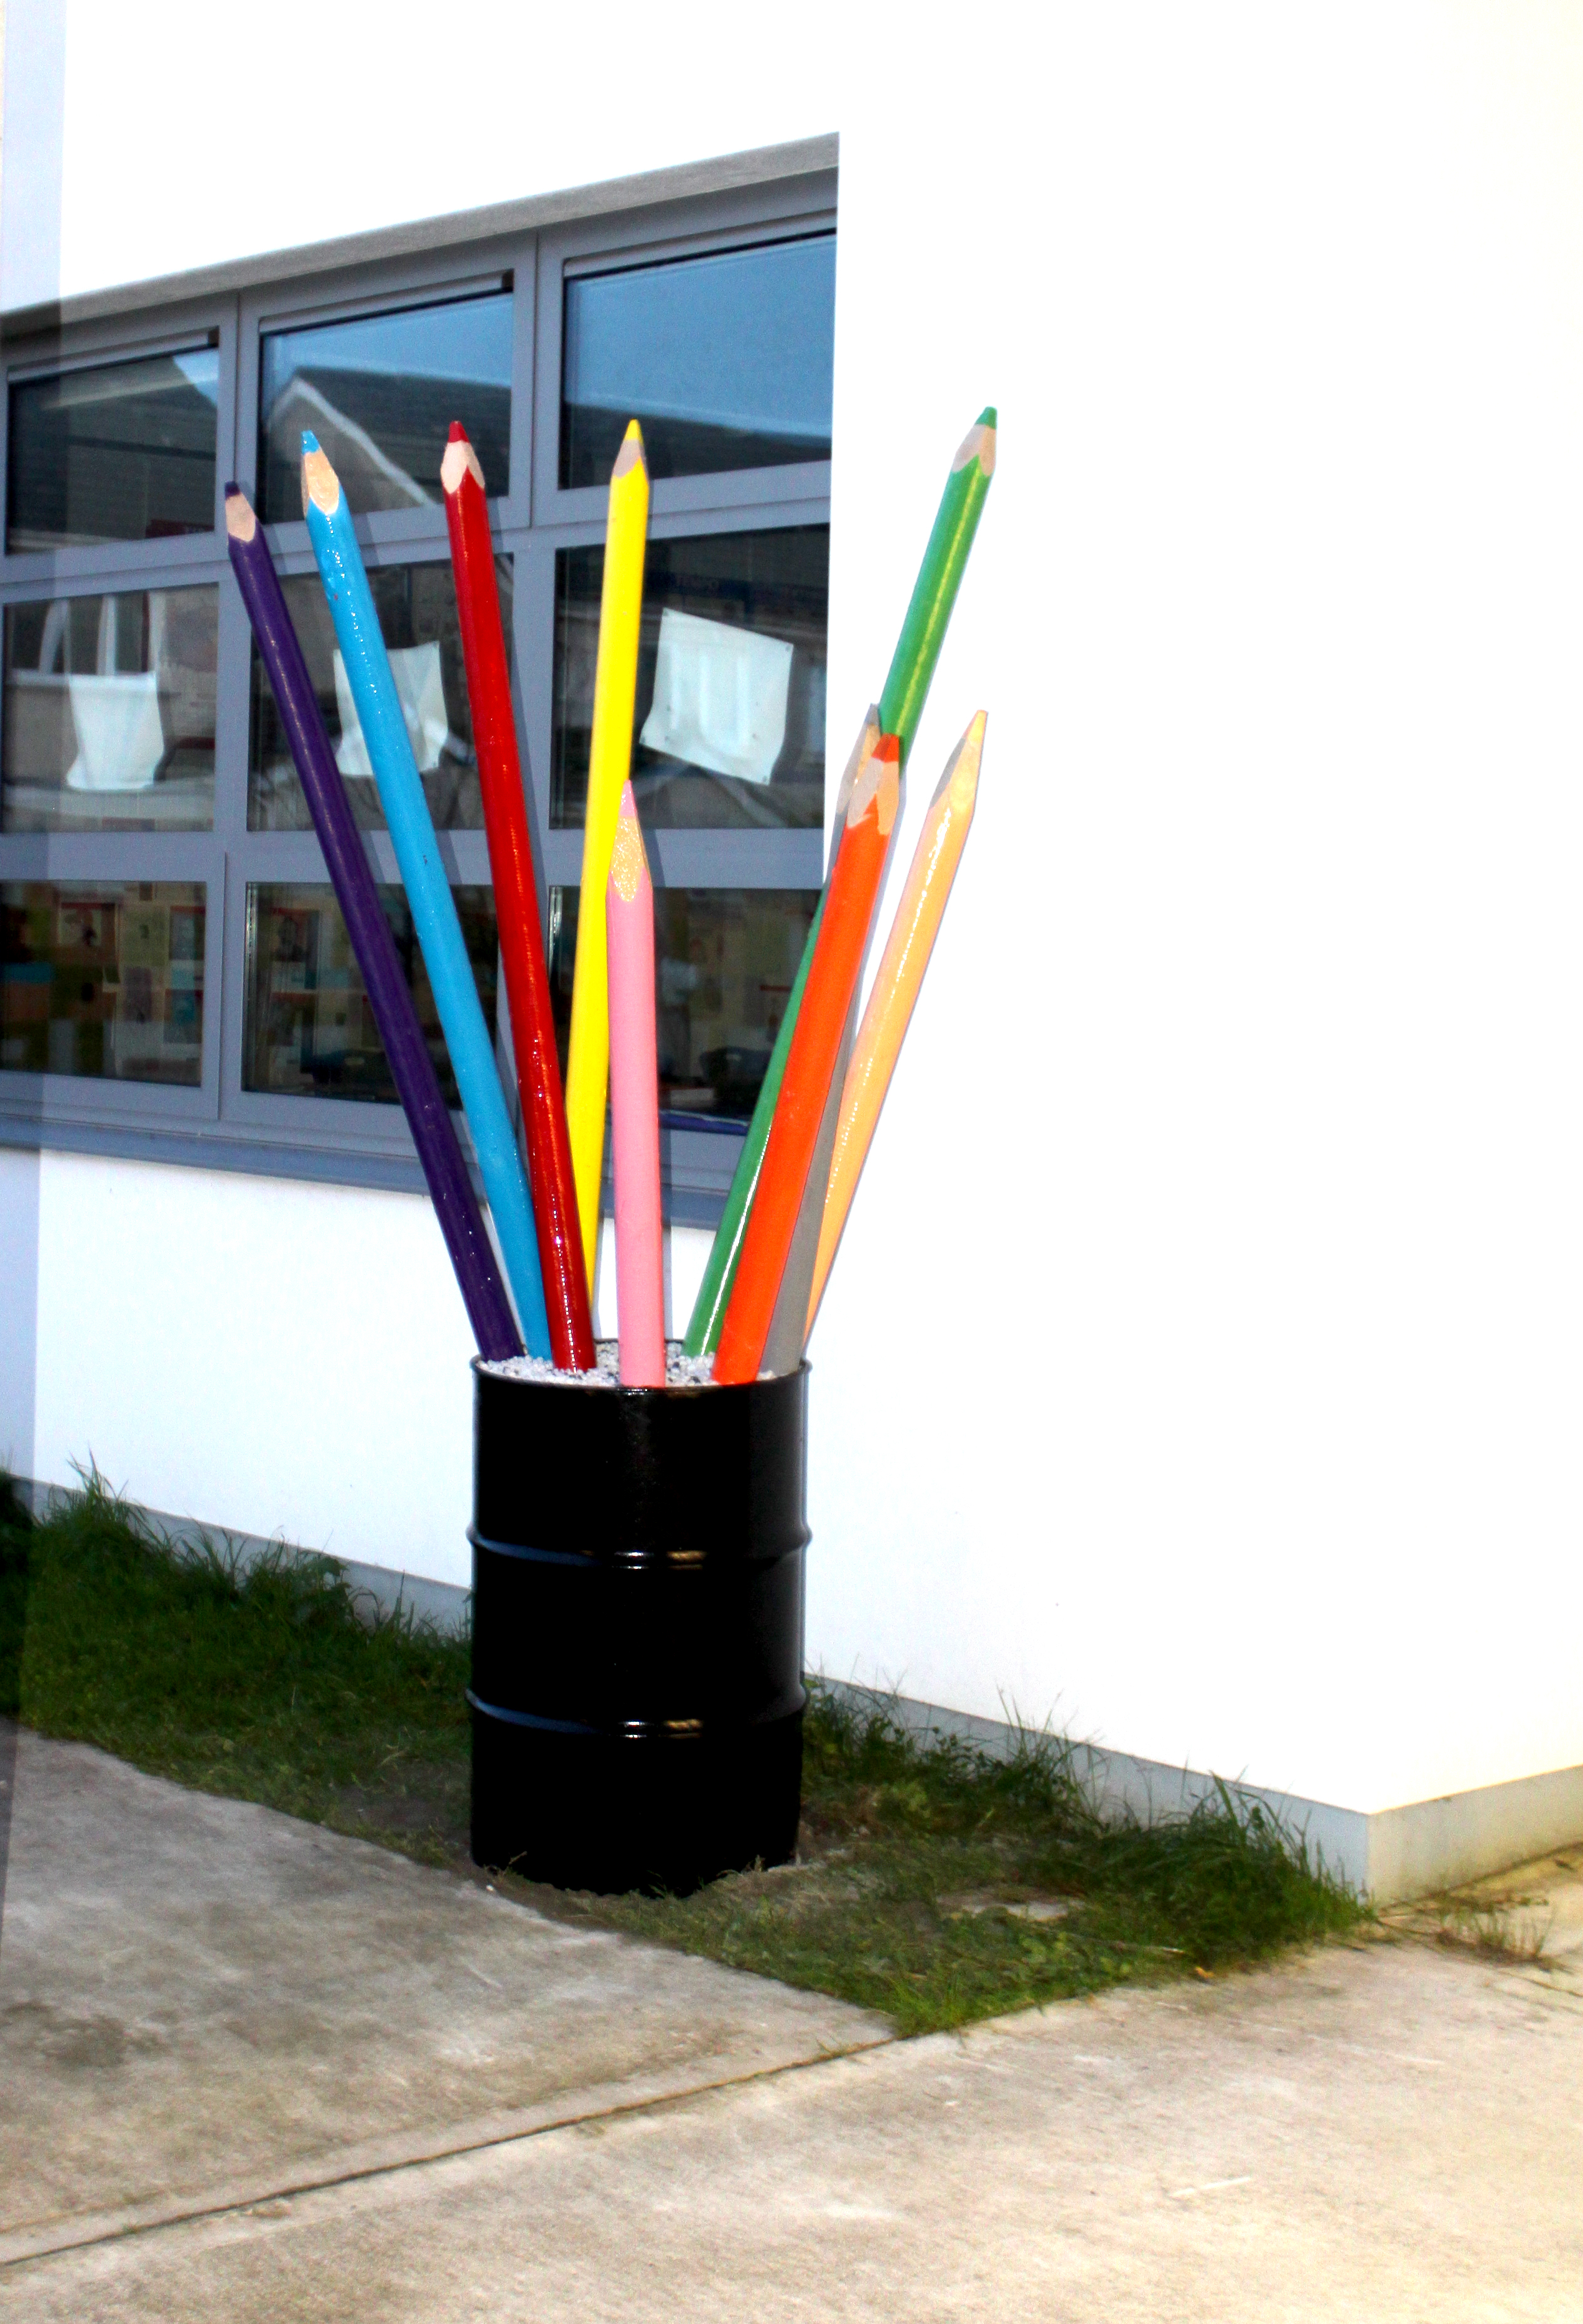 Giant colouring pencils